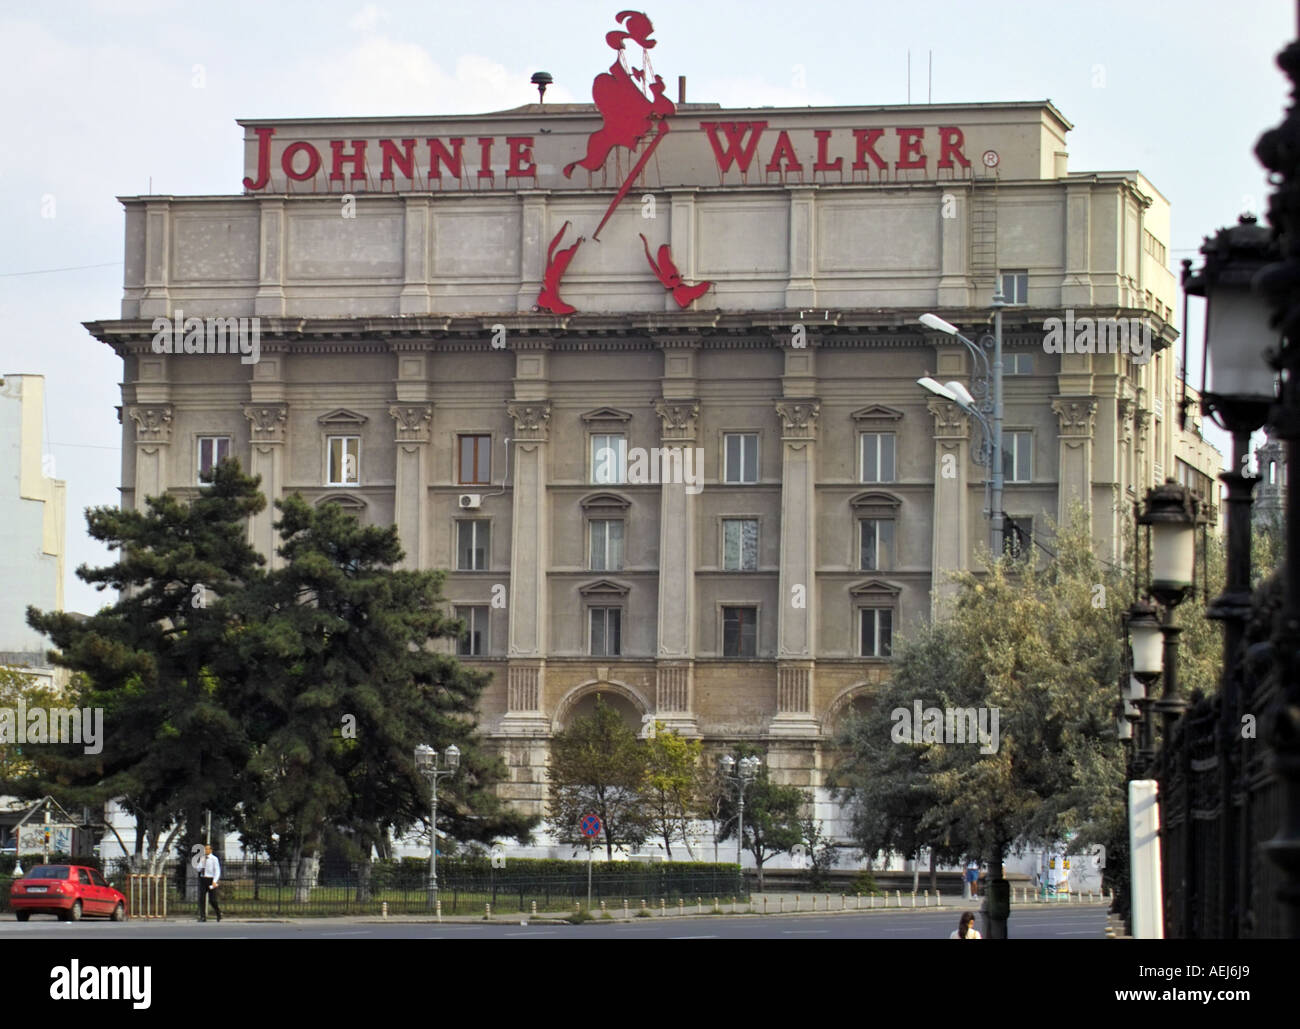 Johnnie walker stock photos johnnie walker stock images alamy - Carrefour head office uae ...